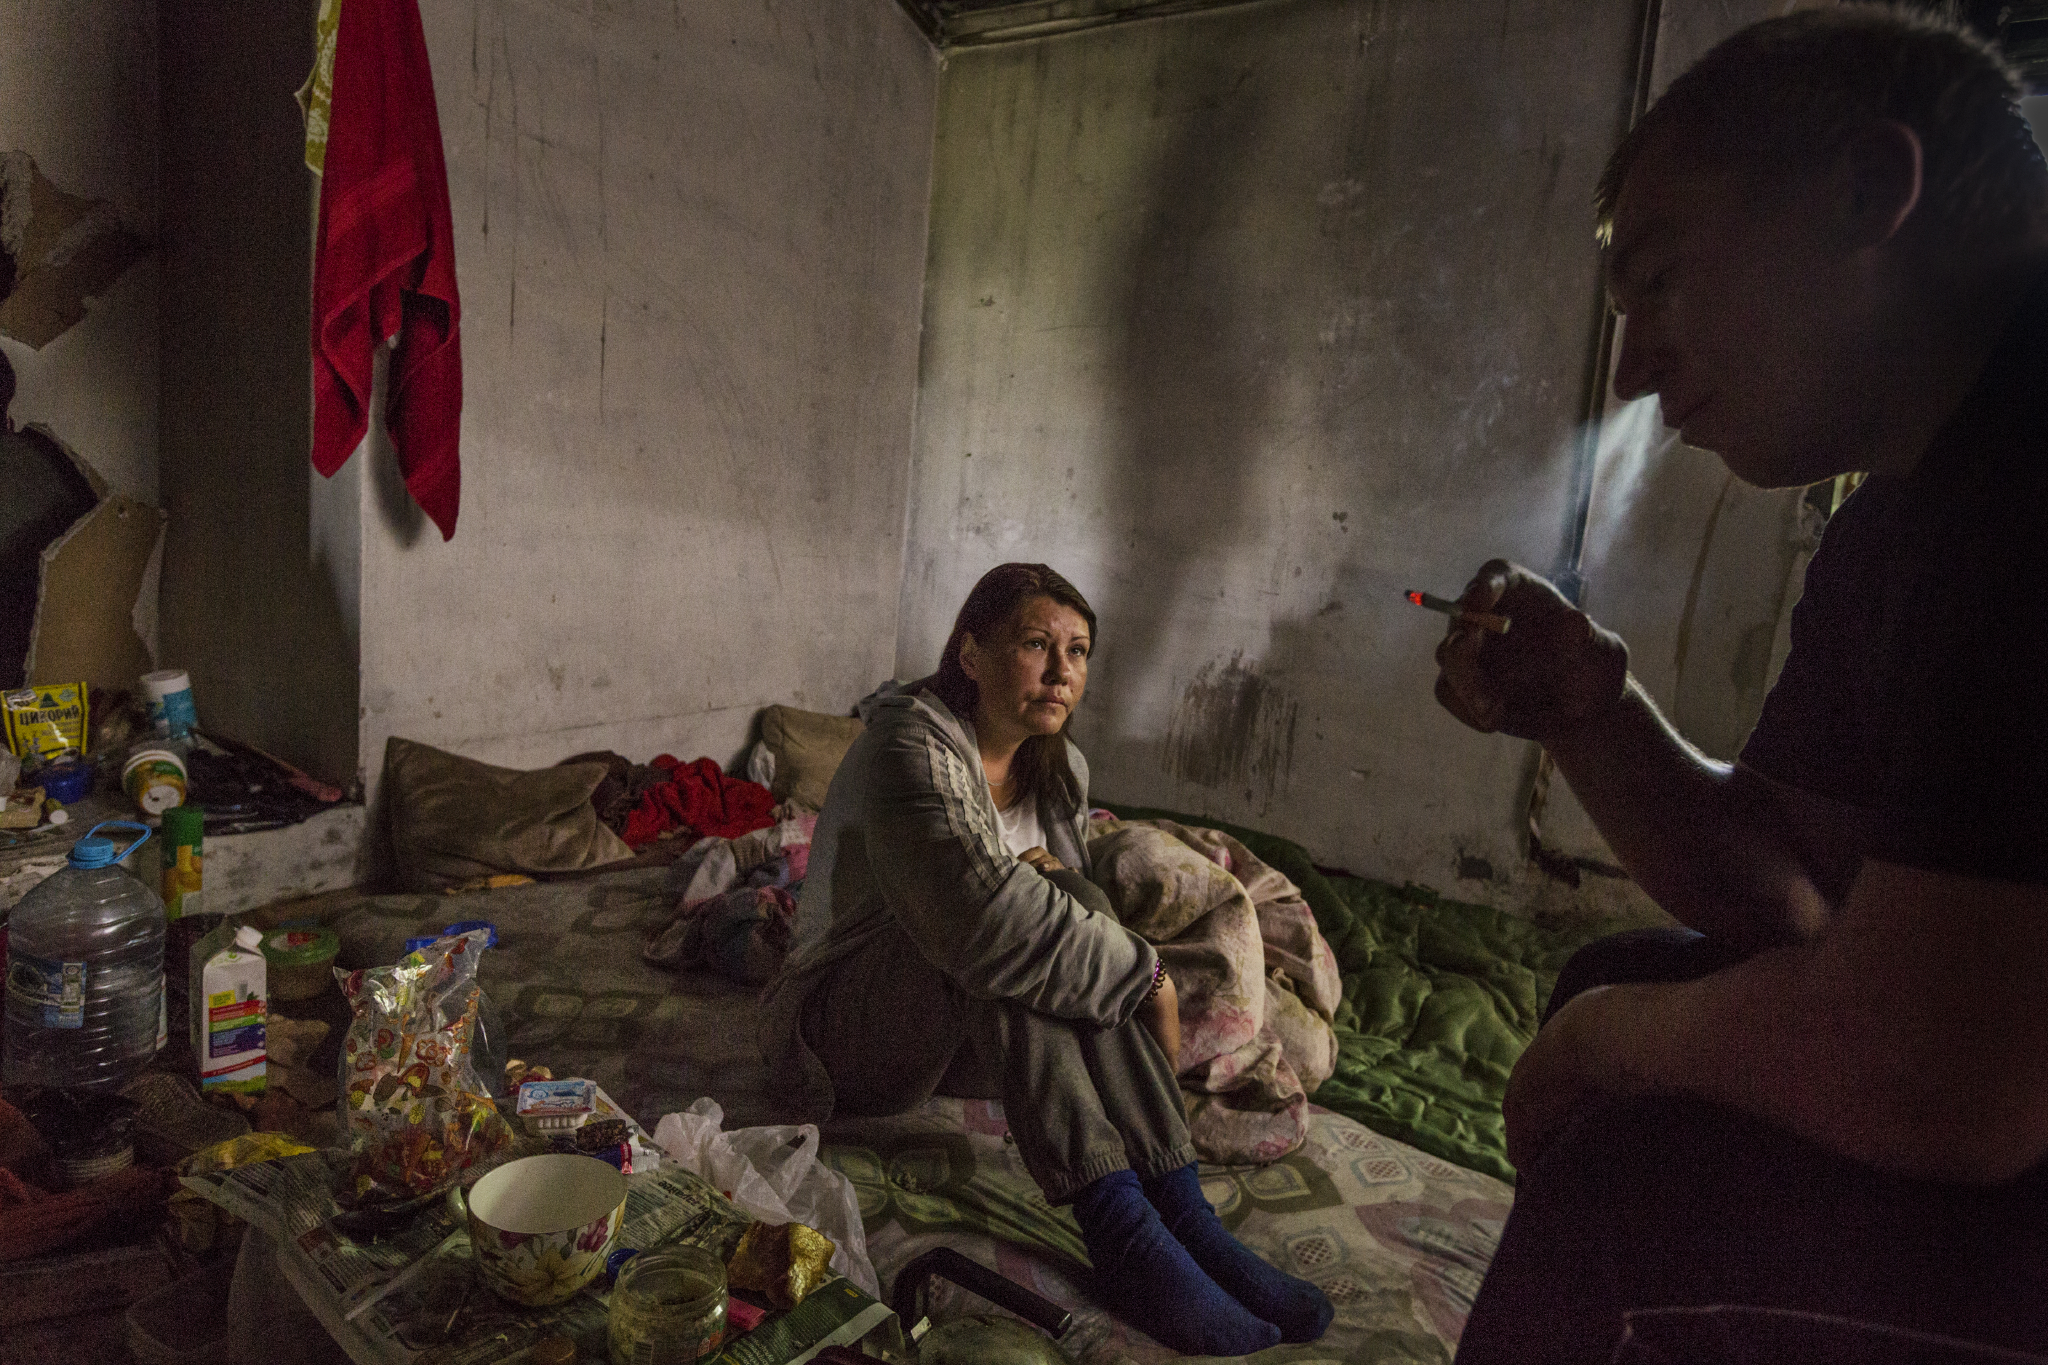 Yevgeniy, 29, has lost his documents and now cannot return to his hometown of Kursk. Homeless, he now lives together with two women in their early thirties in an abandoned train depot. While homelessness amongst Russian youth has declined from the staggering levels in the past, precise numbers are hard to come by.   Moscow, Russia